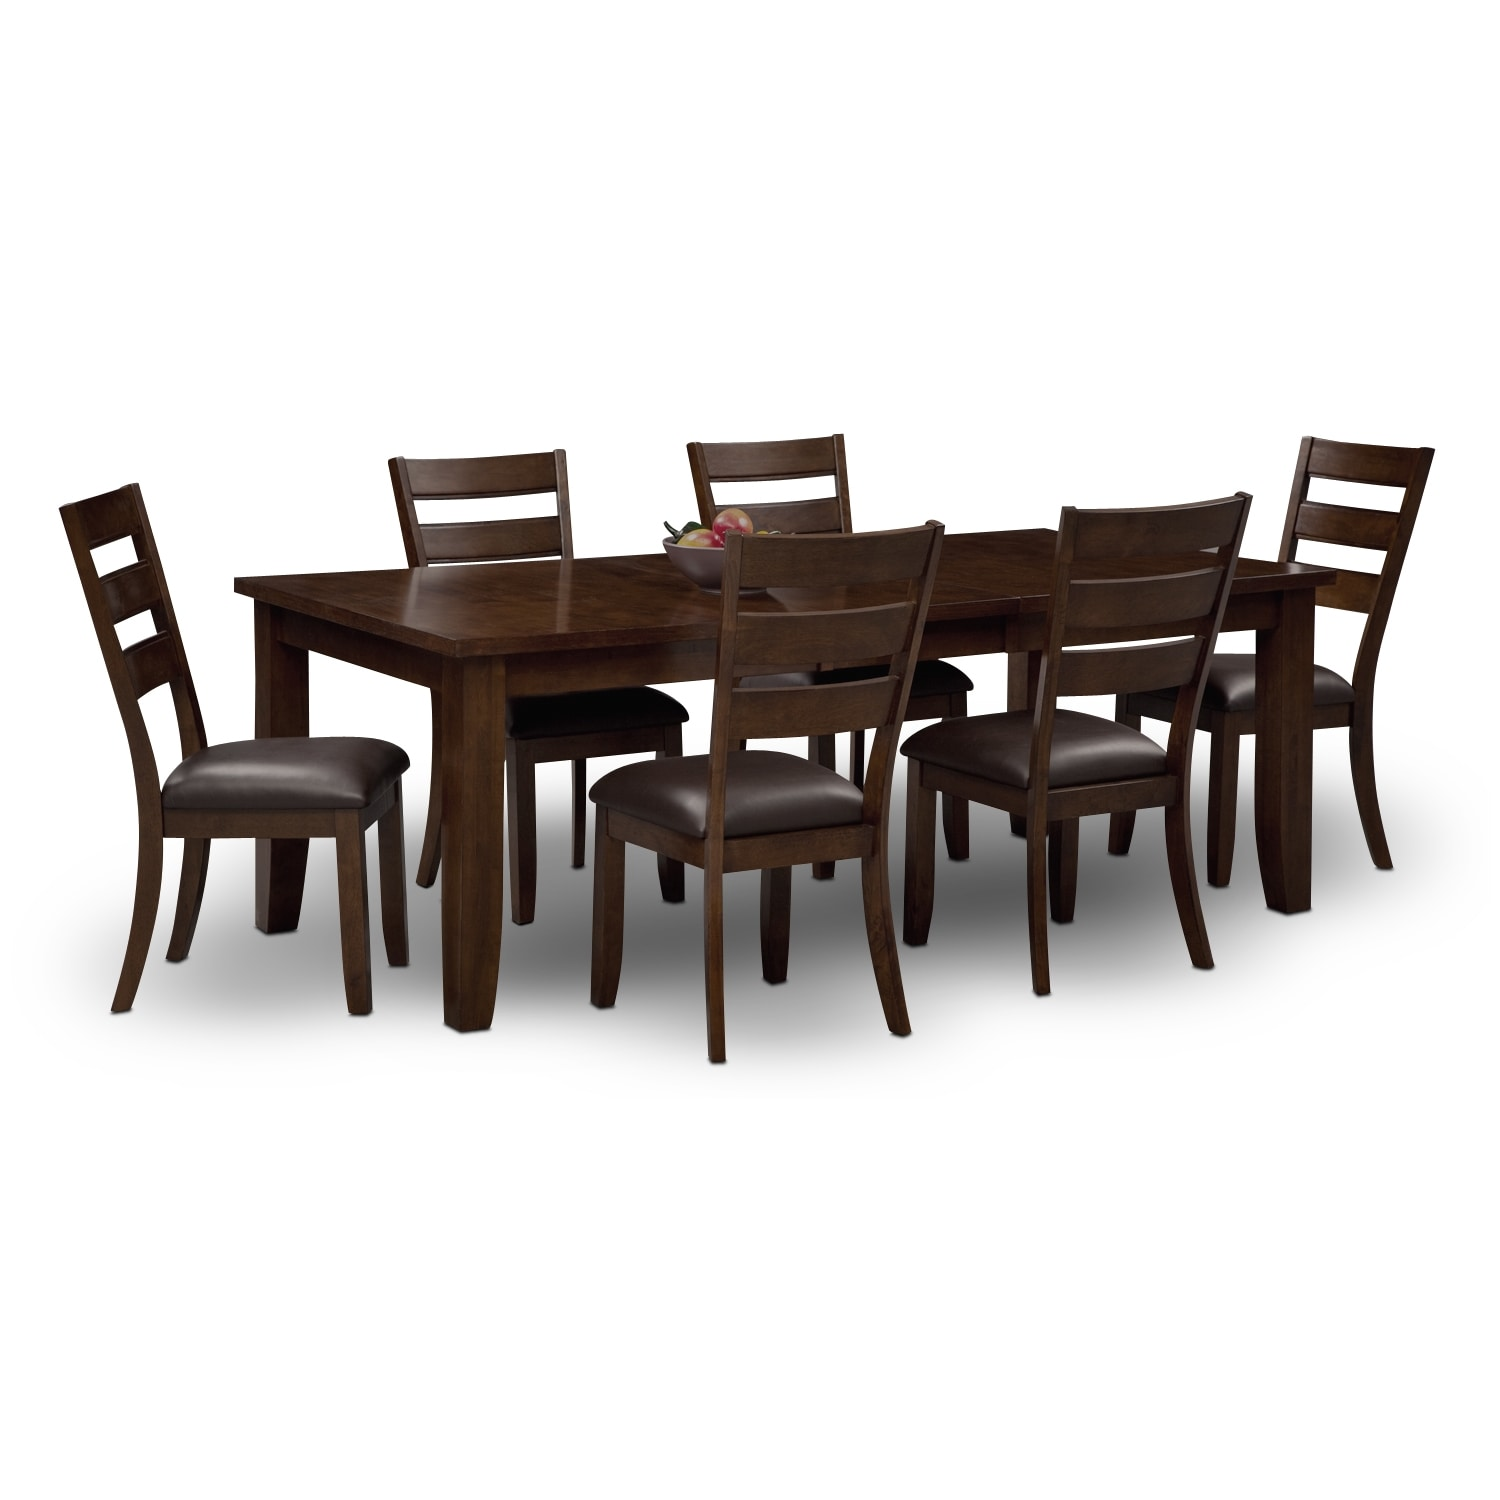 Abaco table and 6 chairs brown american signature for Signature furniture